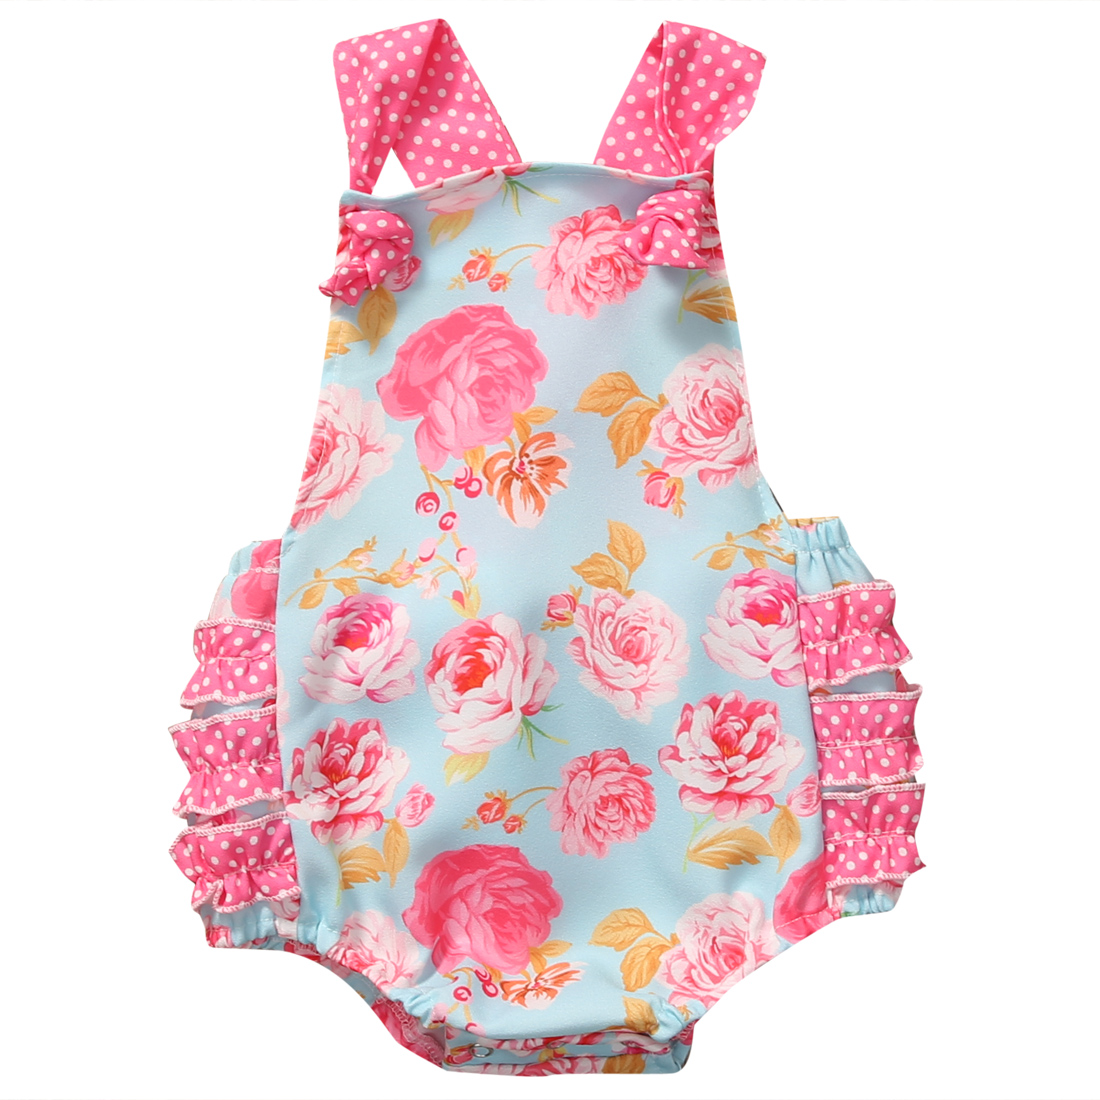 2017 Floral Baby Romper Newborn Infant Baby Girls Clothes Summer Sleeveless Ruffles Jumpsuit One Pieces Outfits Sunsuit 0-18M